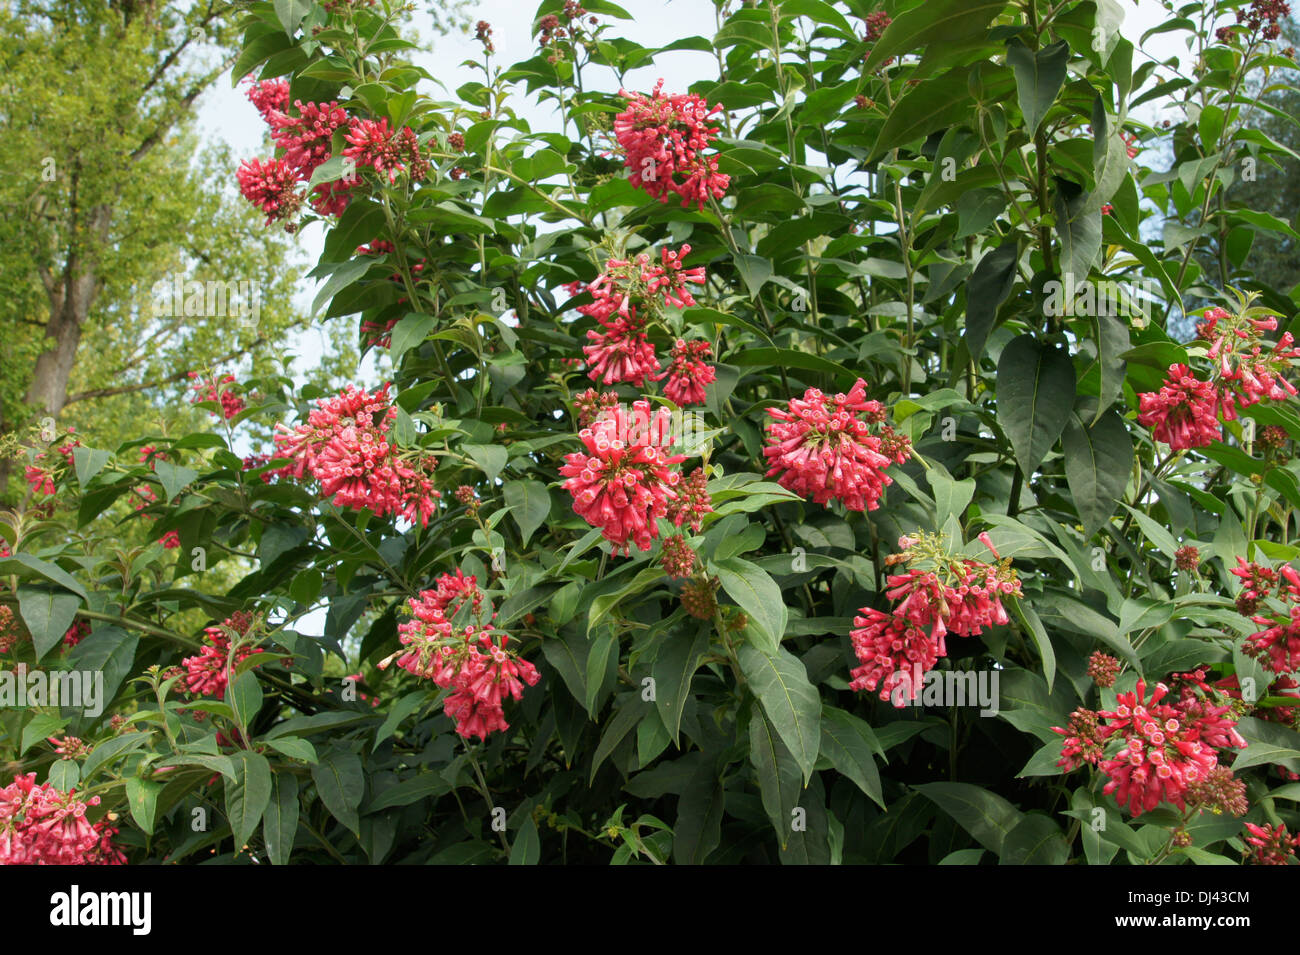 Strauch Sommerblüher Cestrum Elegans Hammerstrauch Stock Photo 62785428 Alamy